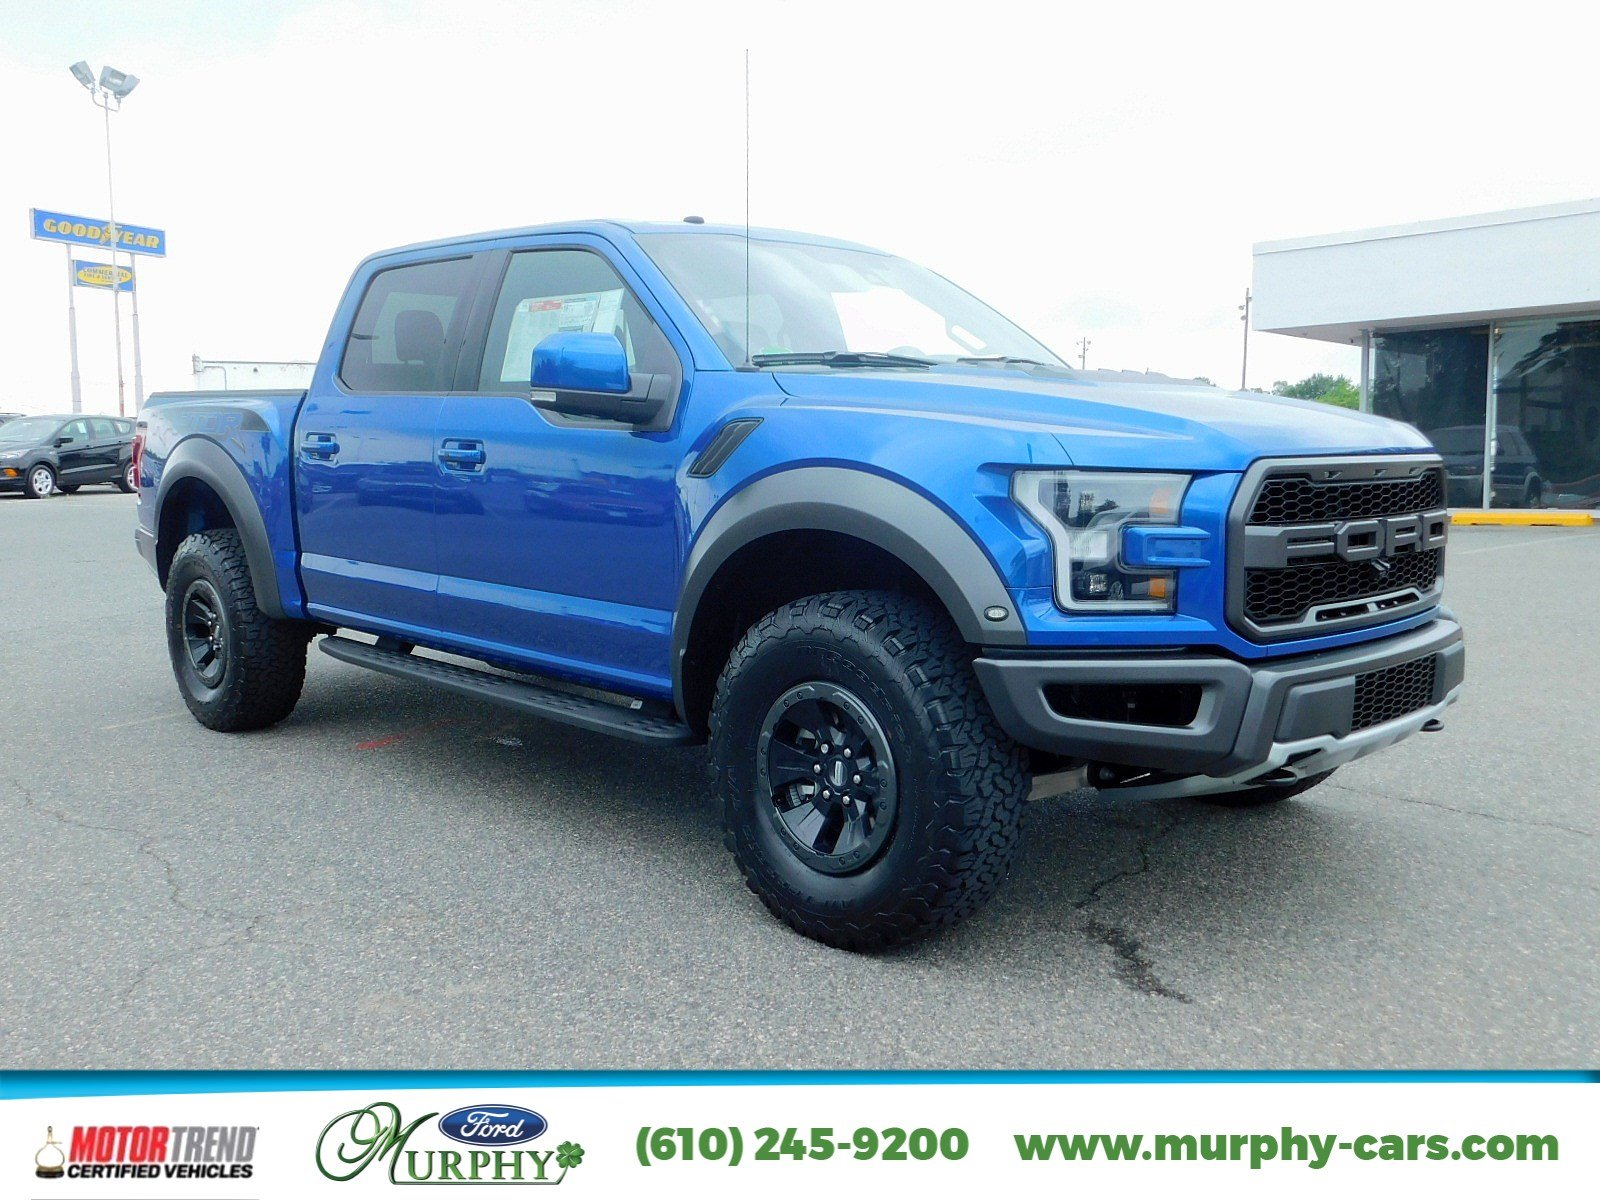 New 2018 Ford F 150 Raptor Short Bed In Delaware County Pa 18371 Series